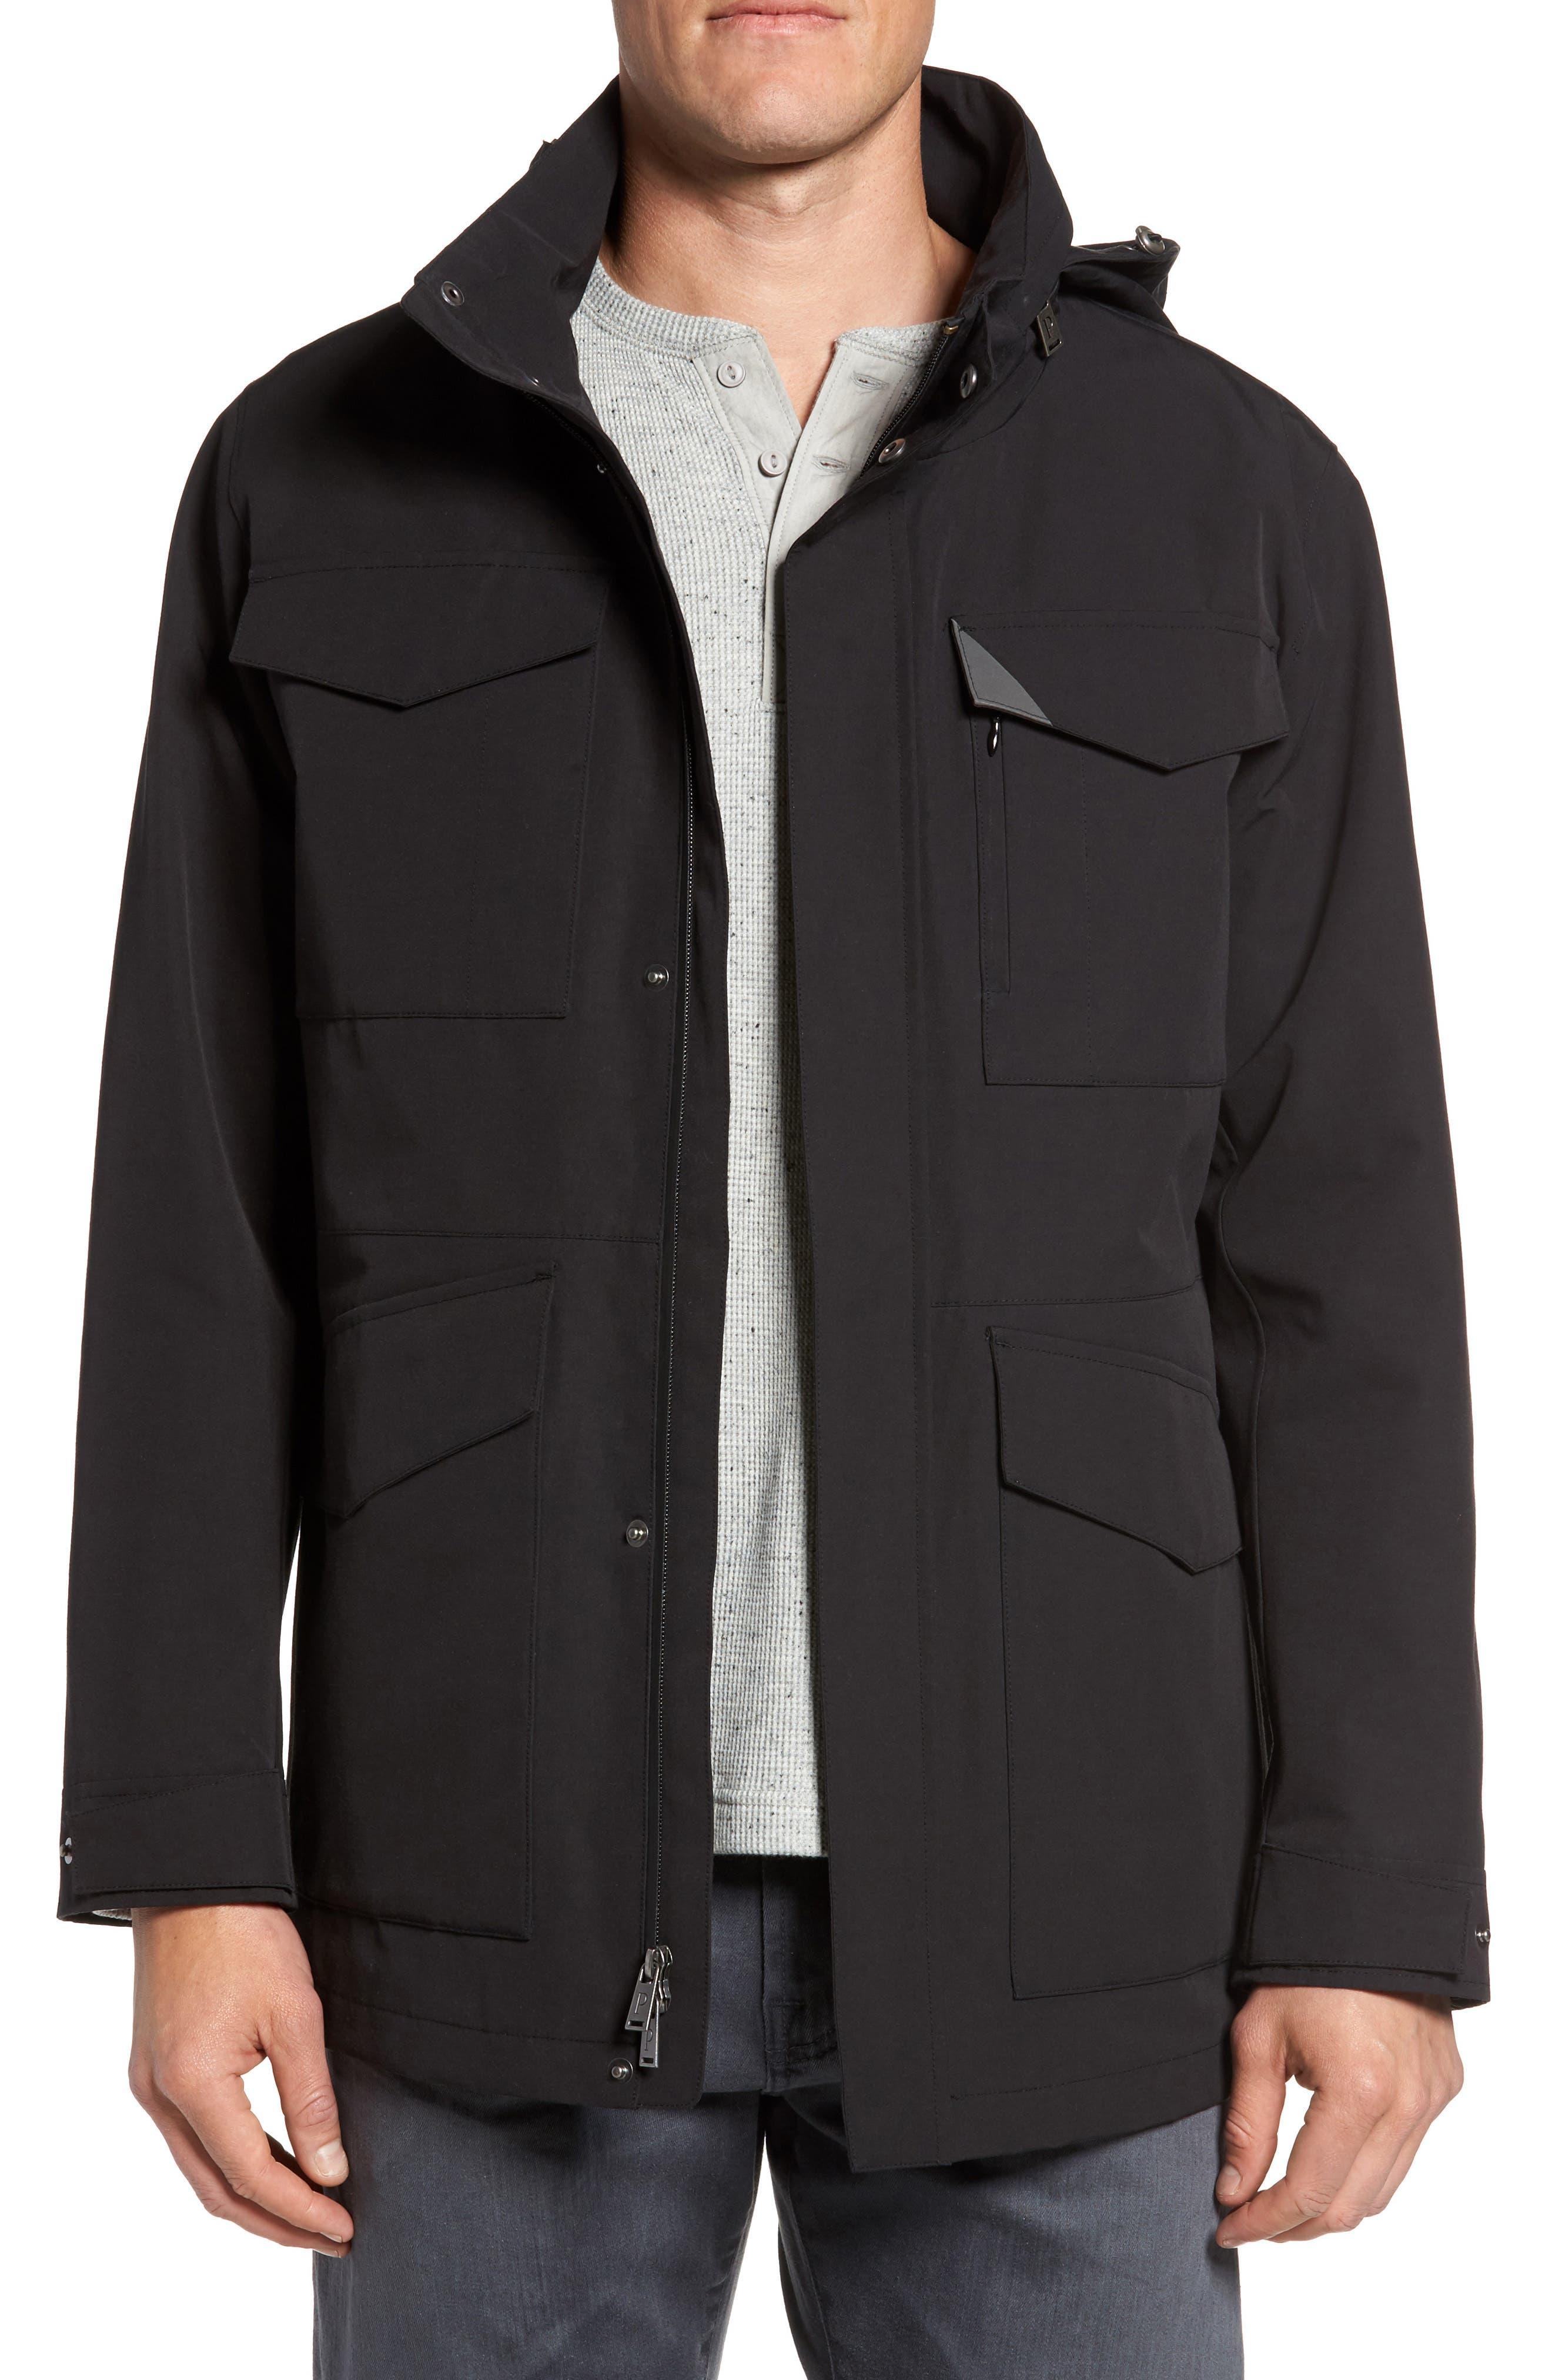 Clyde Hill Waterproof Field Jacket,                             Main thumbnail 1, color,                             Black